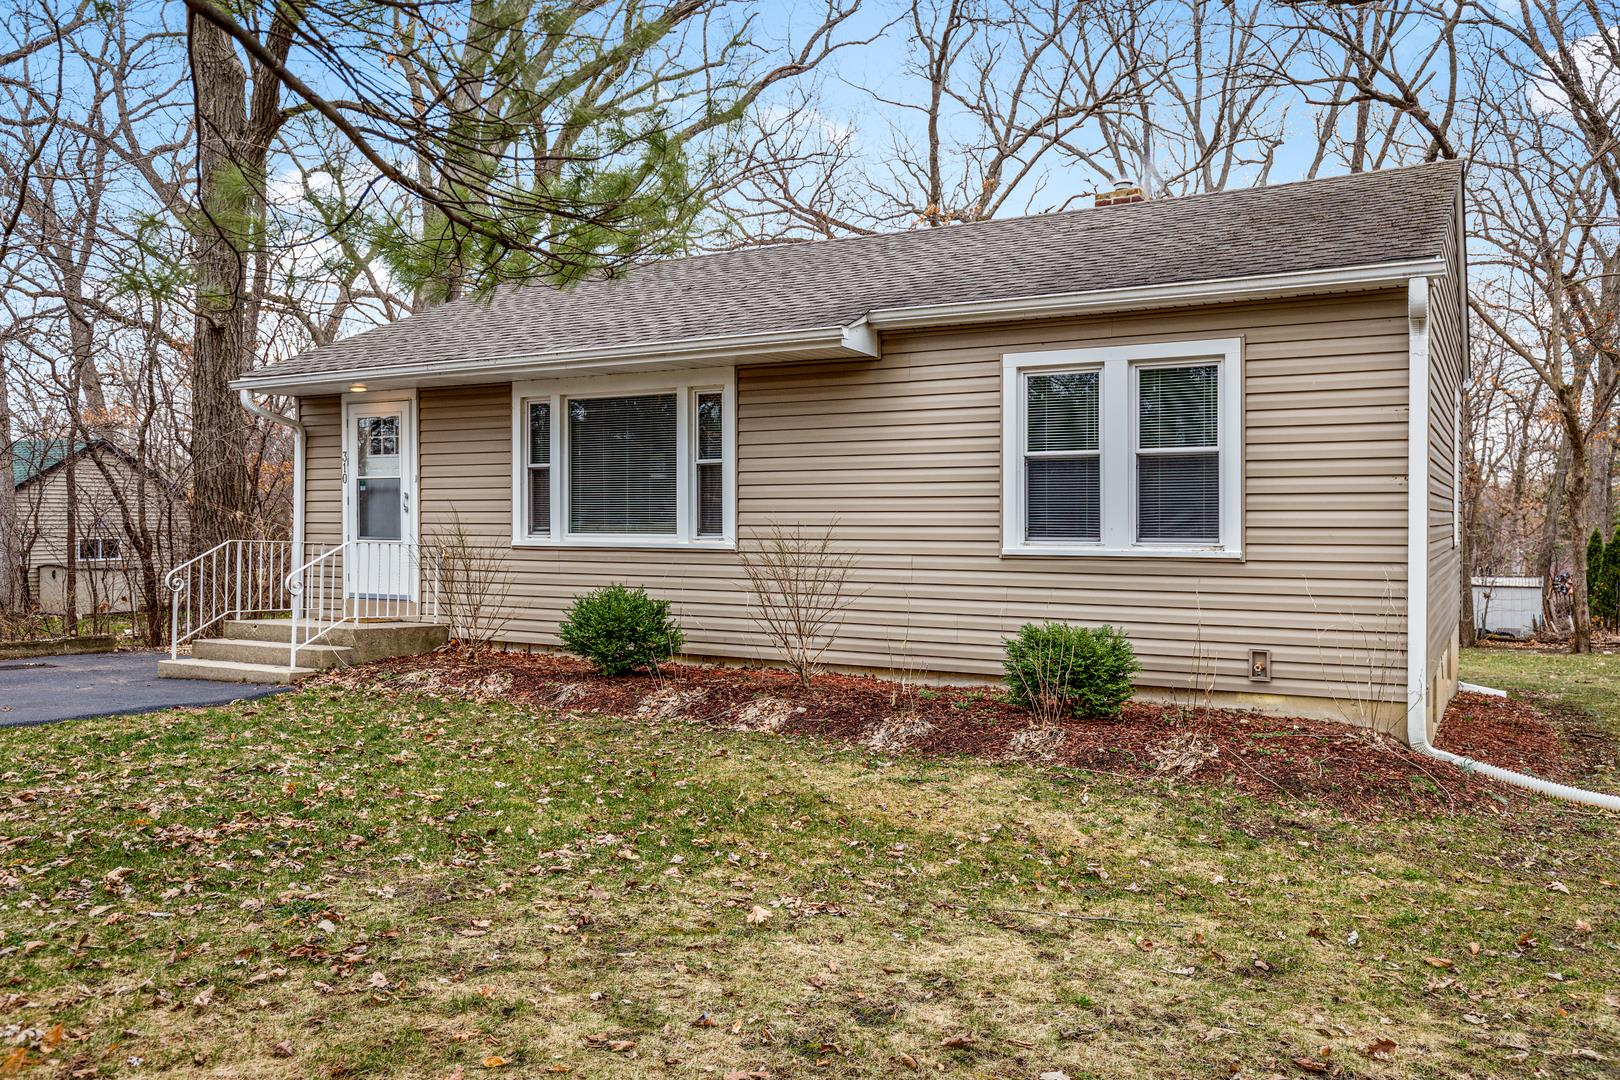 310 Wander Way, Lake in the Hills, IL 60156 - #: 11035416